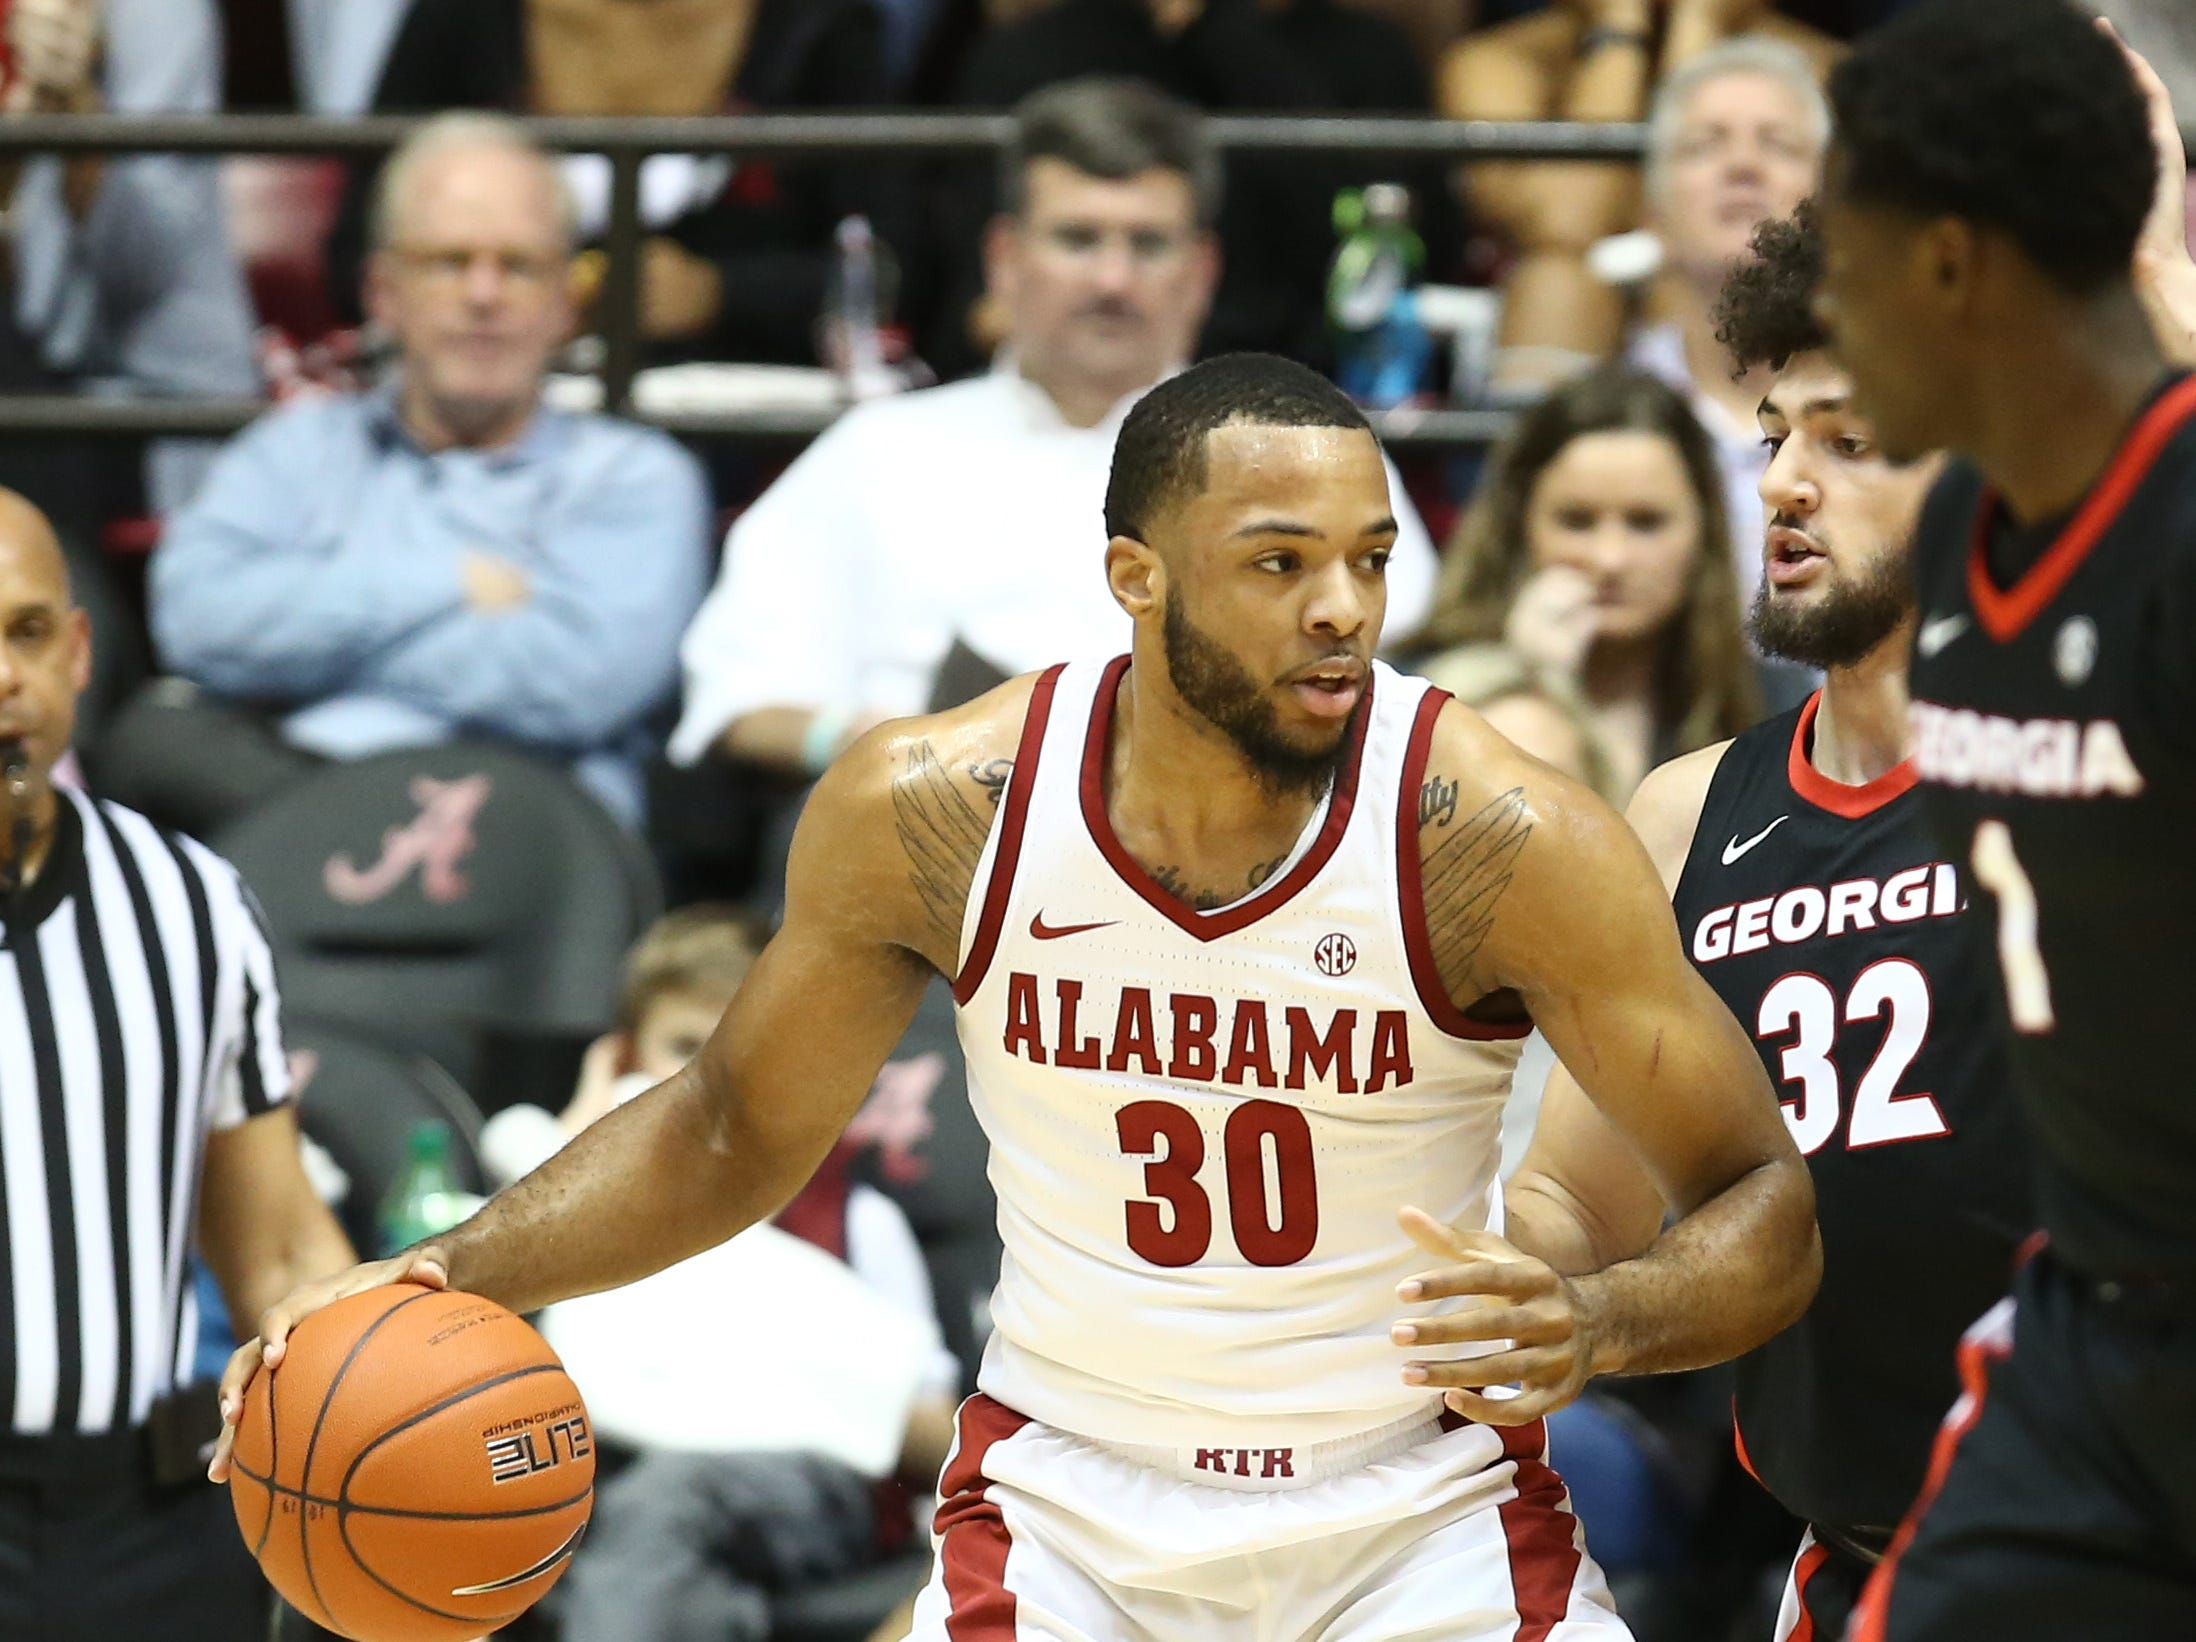 Feb 6, 2019; Tuscaloosa, AL, USA; Alabama Crimson Tide forward Galin Smith (30) drives to the basket against  during the first half Georgia Bulldogs at Coleman Coliseum. Mandatory Credit: Marvin Gentry-USA TODAY Sports